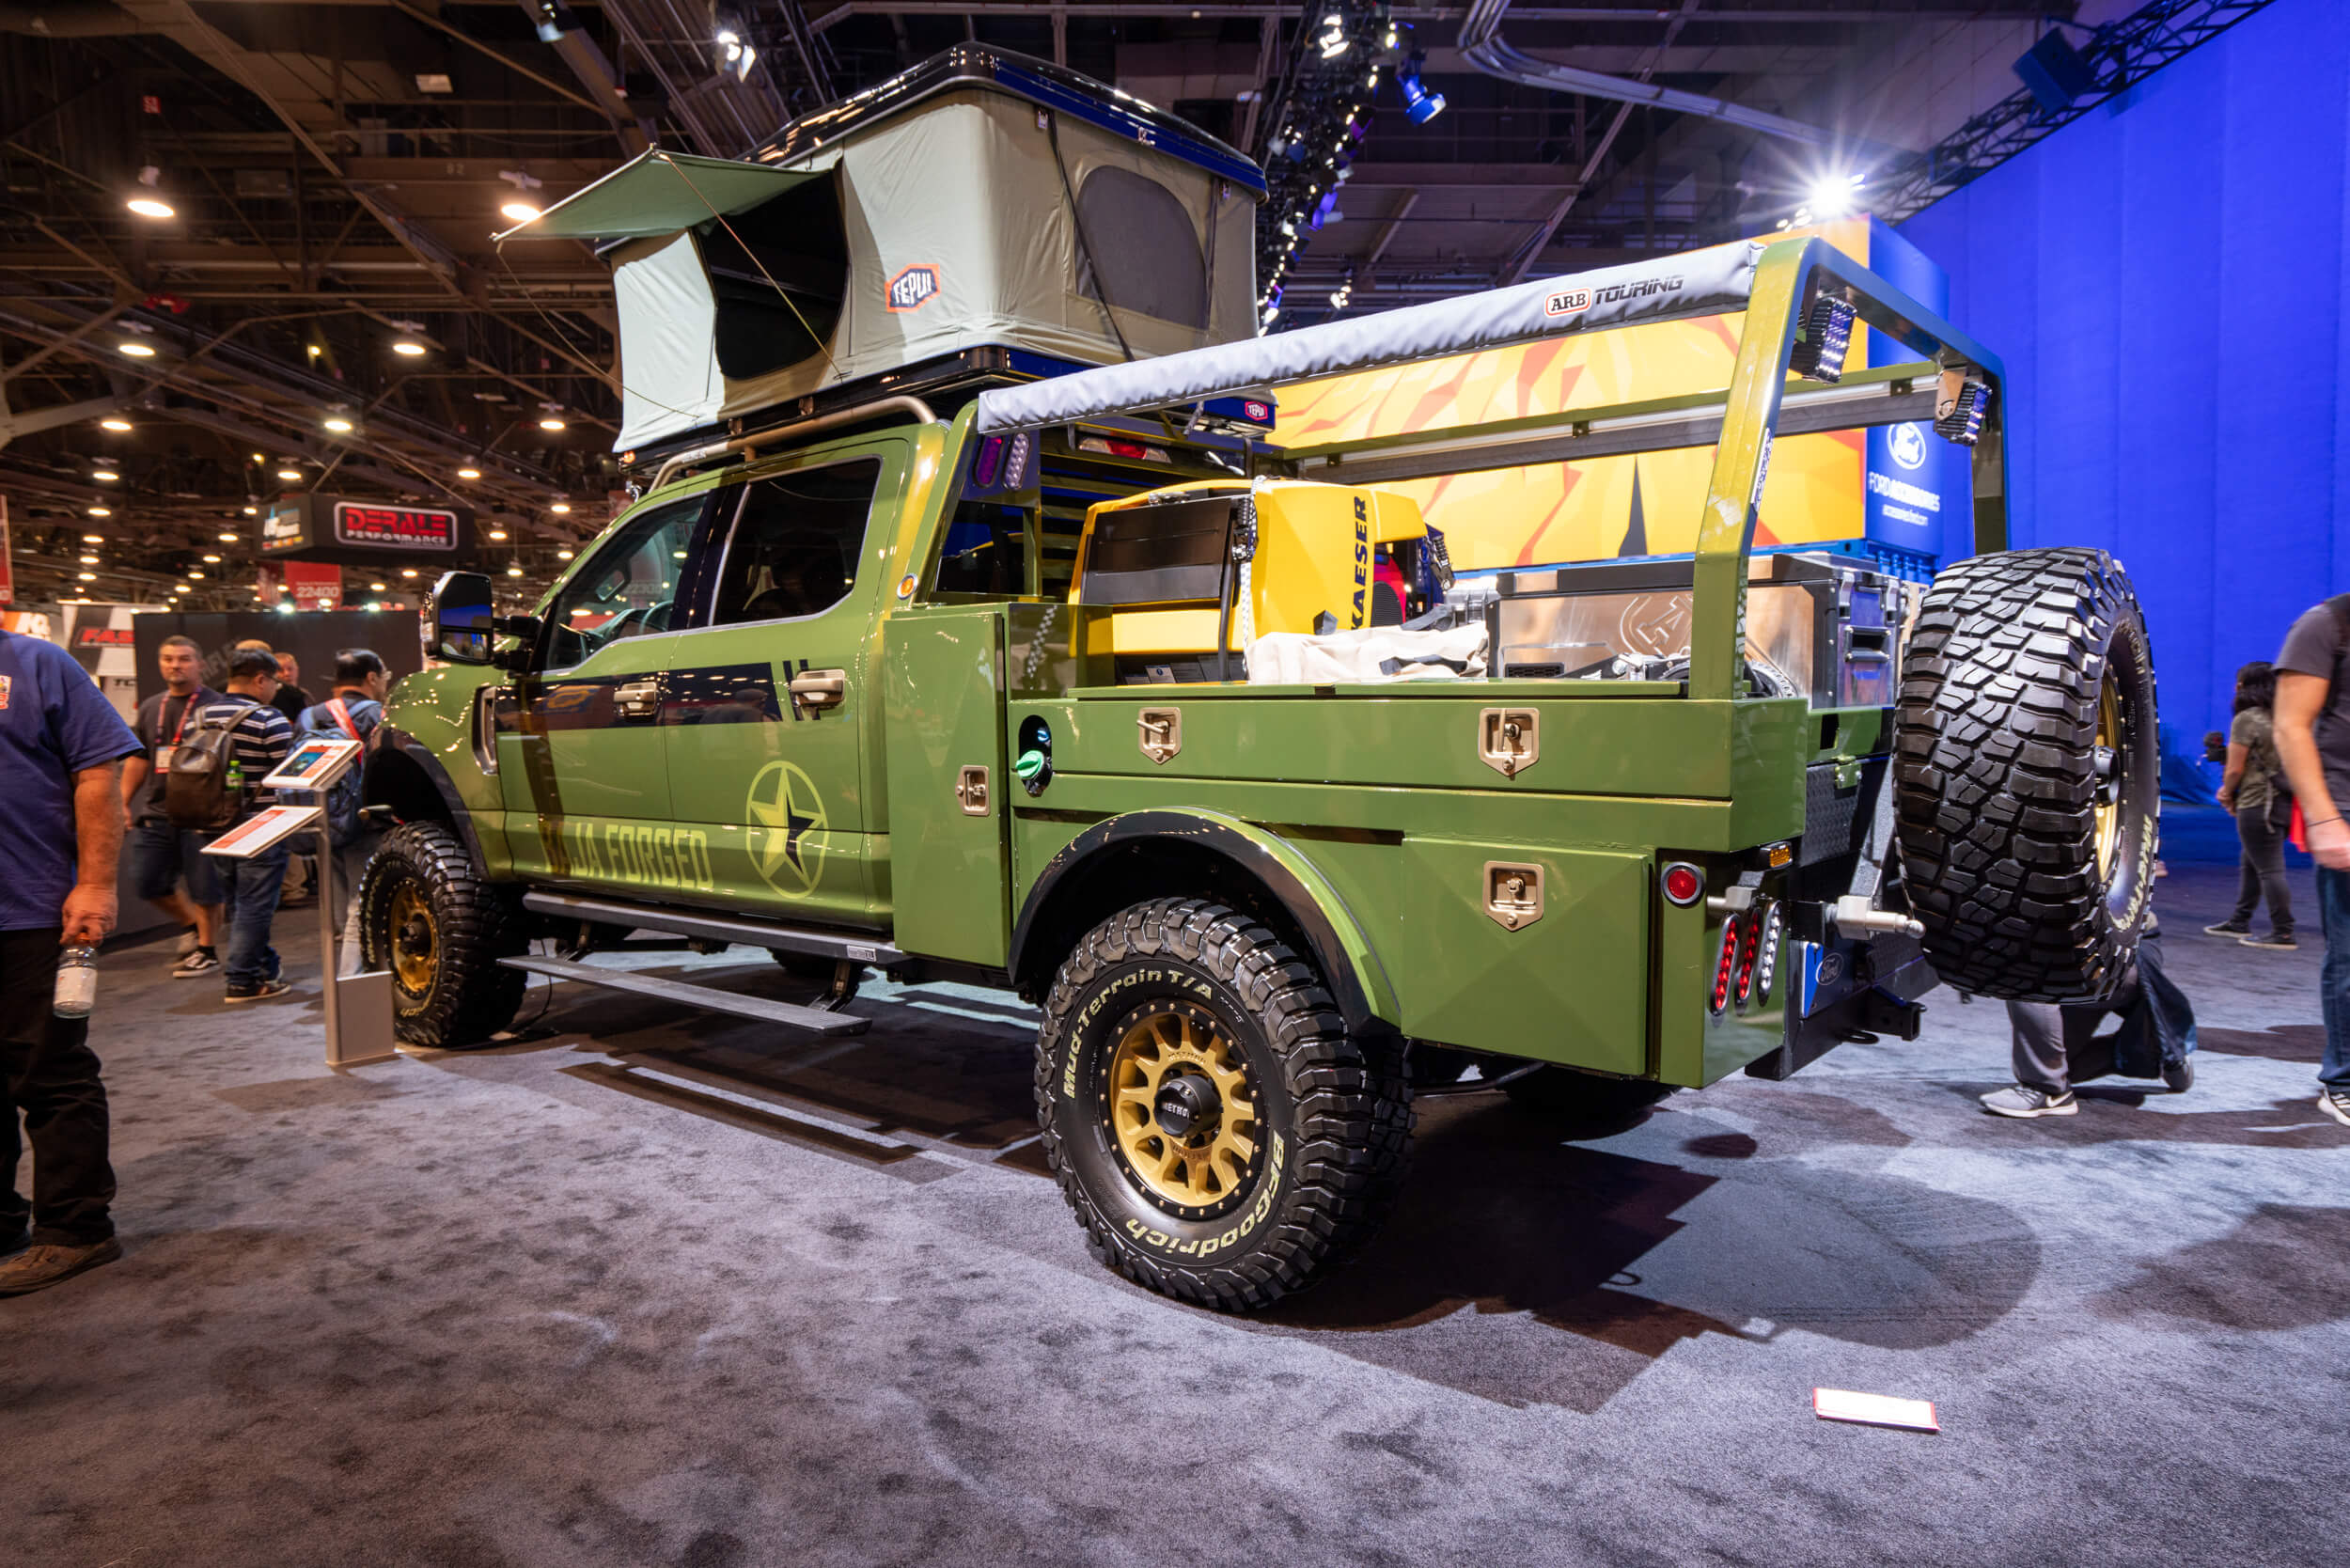 Even if you're not a camper, you'll admit this Ford F-350 with a roof tent looks amazing.